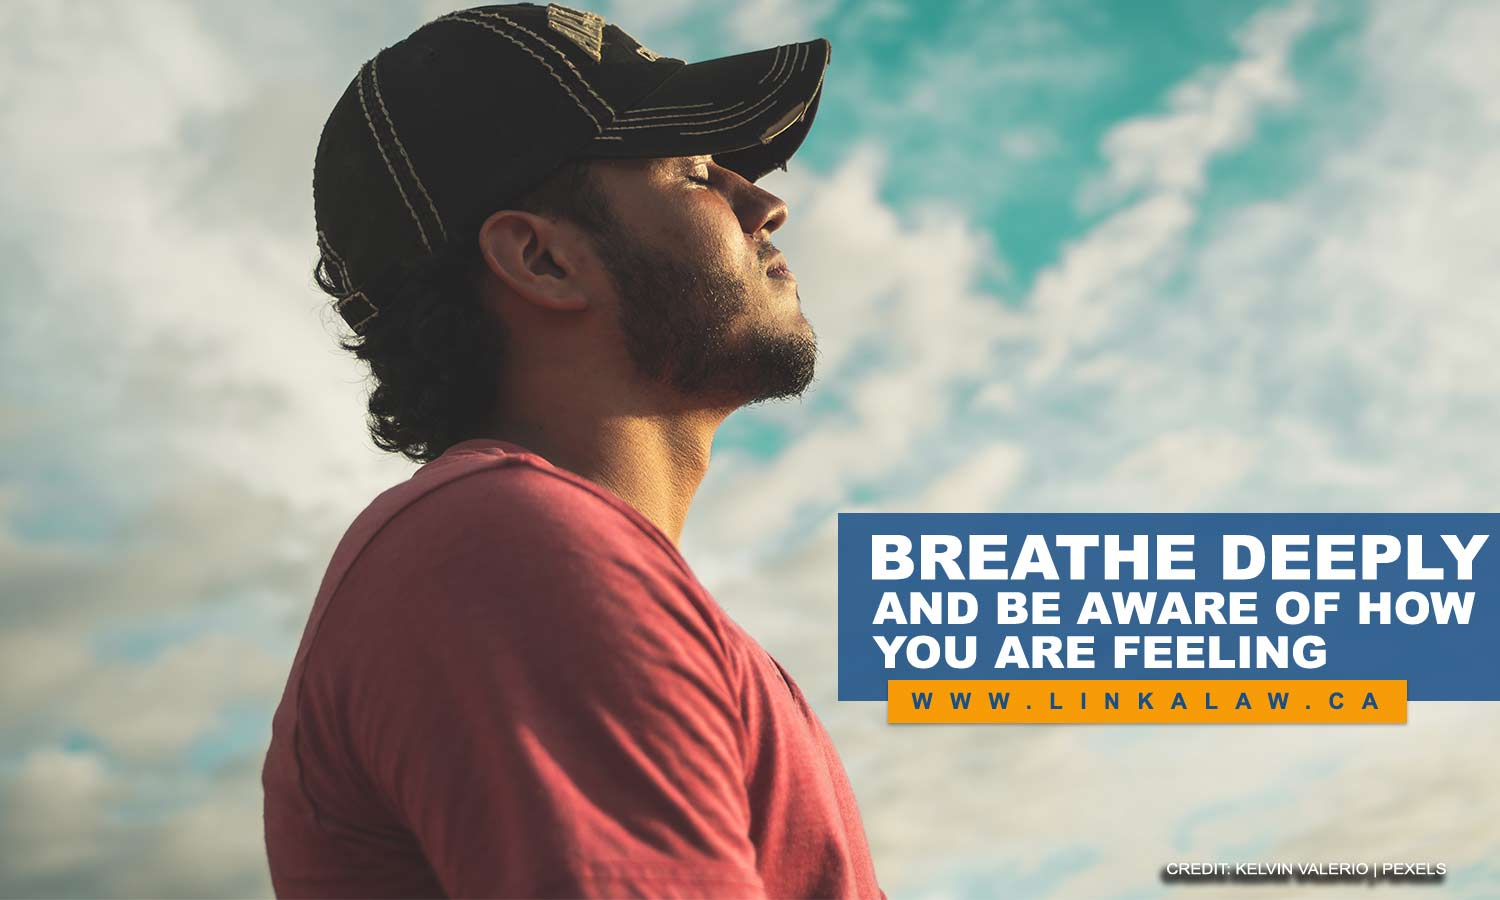 Breathe deeply and be aware of how you are feeling